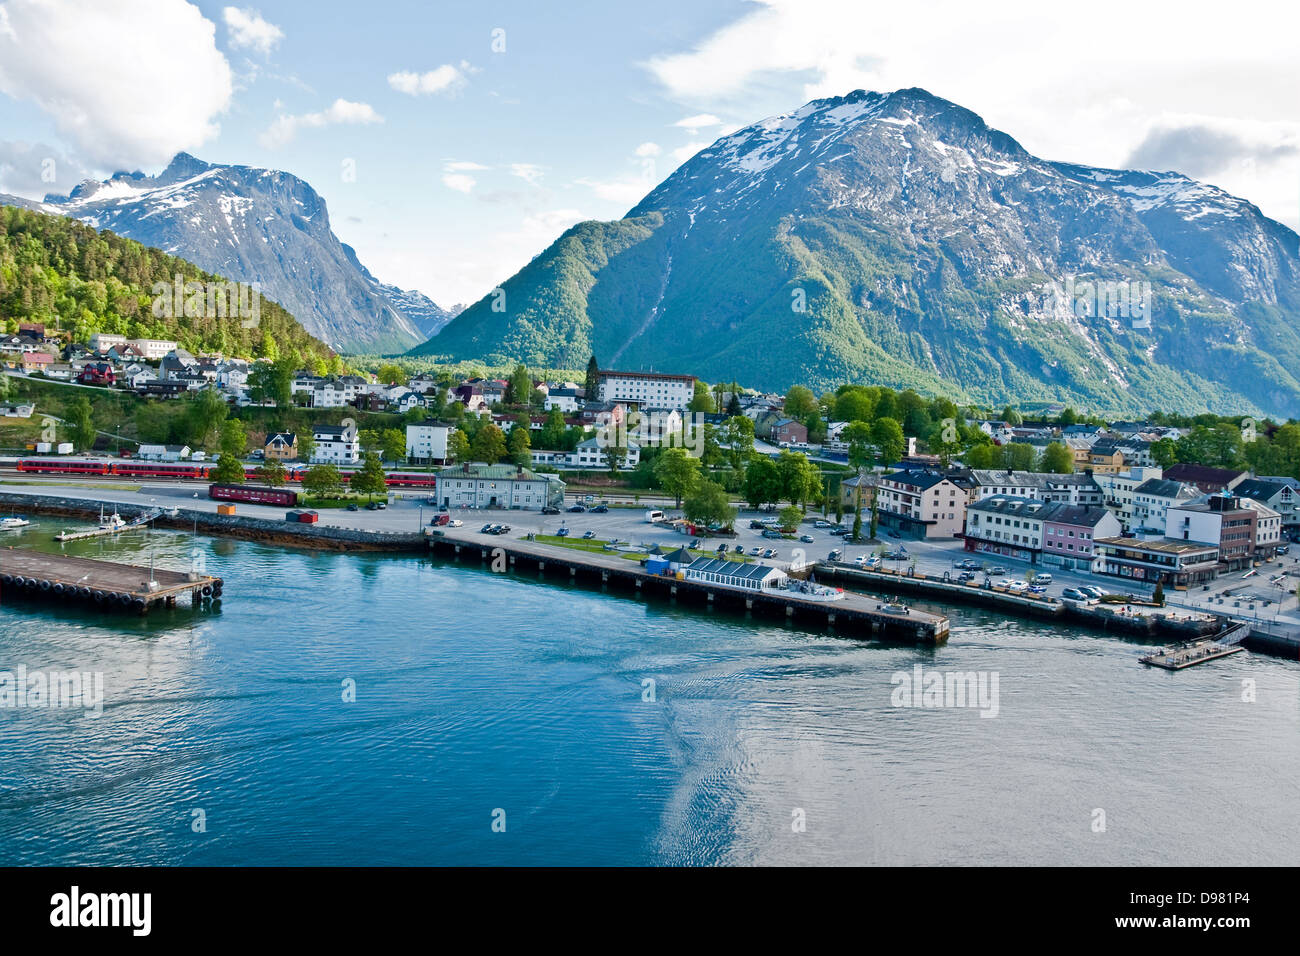 The town of Andalsnes enjoys an idyllic setting surrounded by the magnificent mountains of Norway's Fjordland - Stock Image